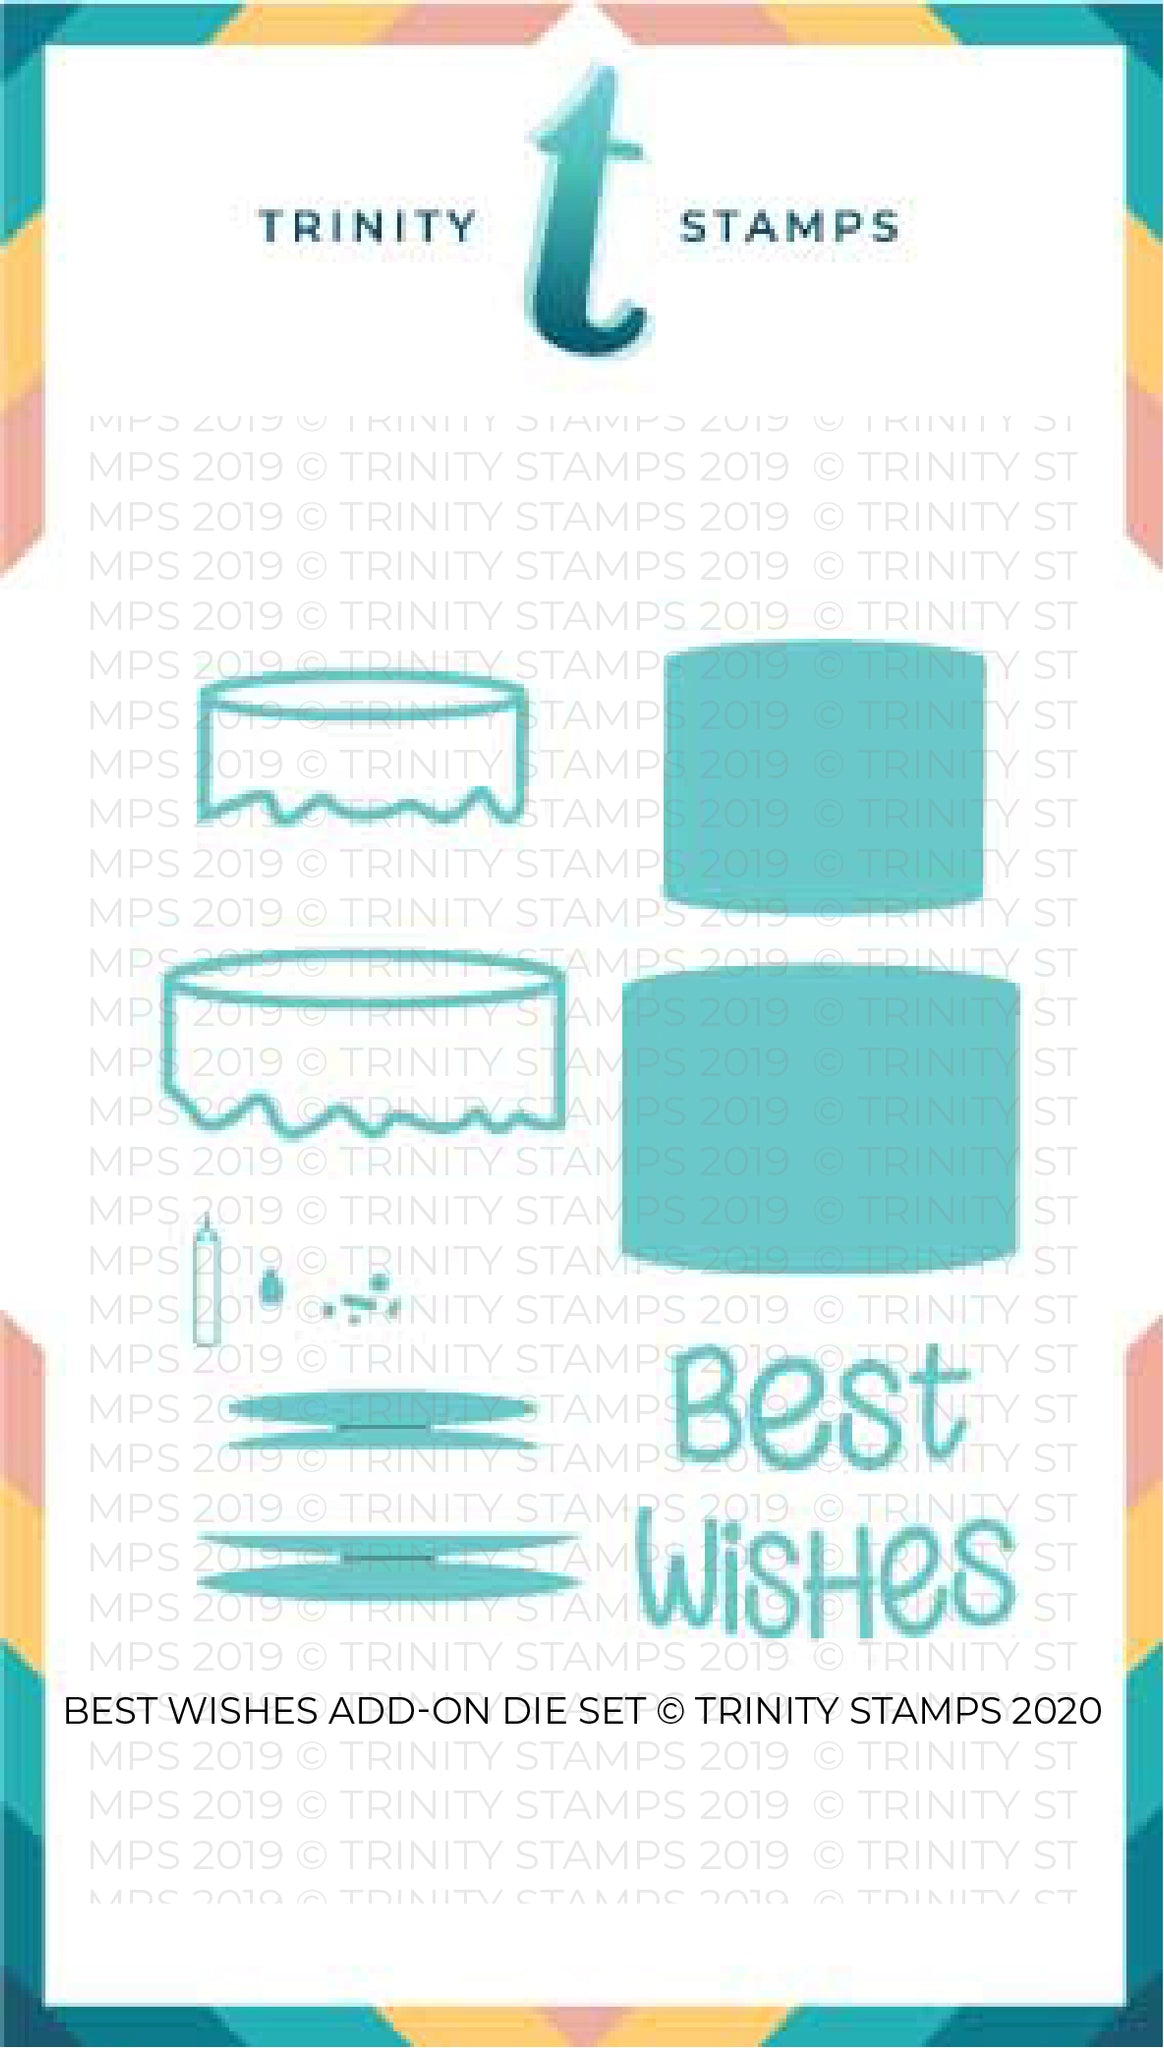 Best Wishes Add-On Die set